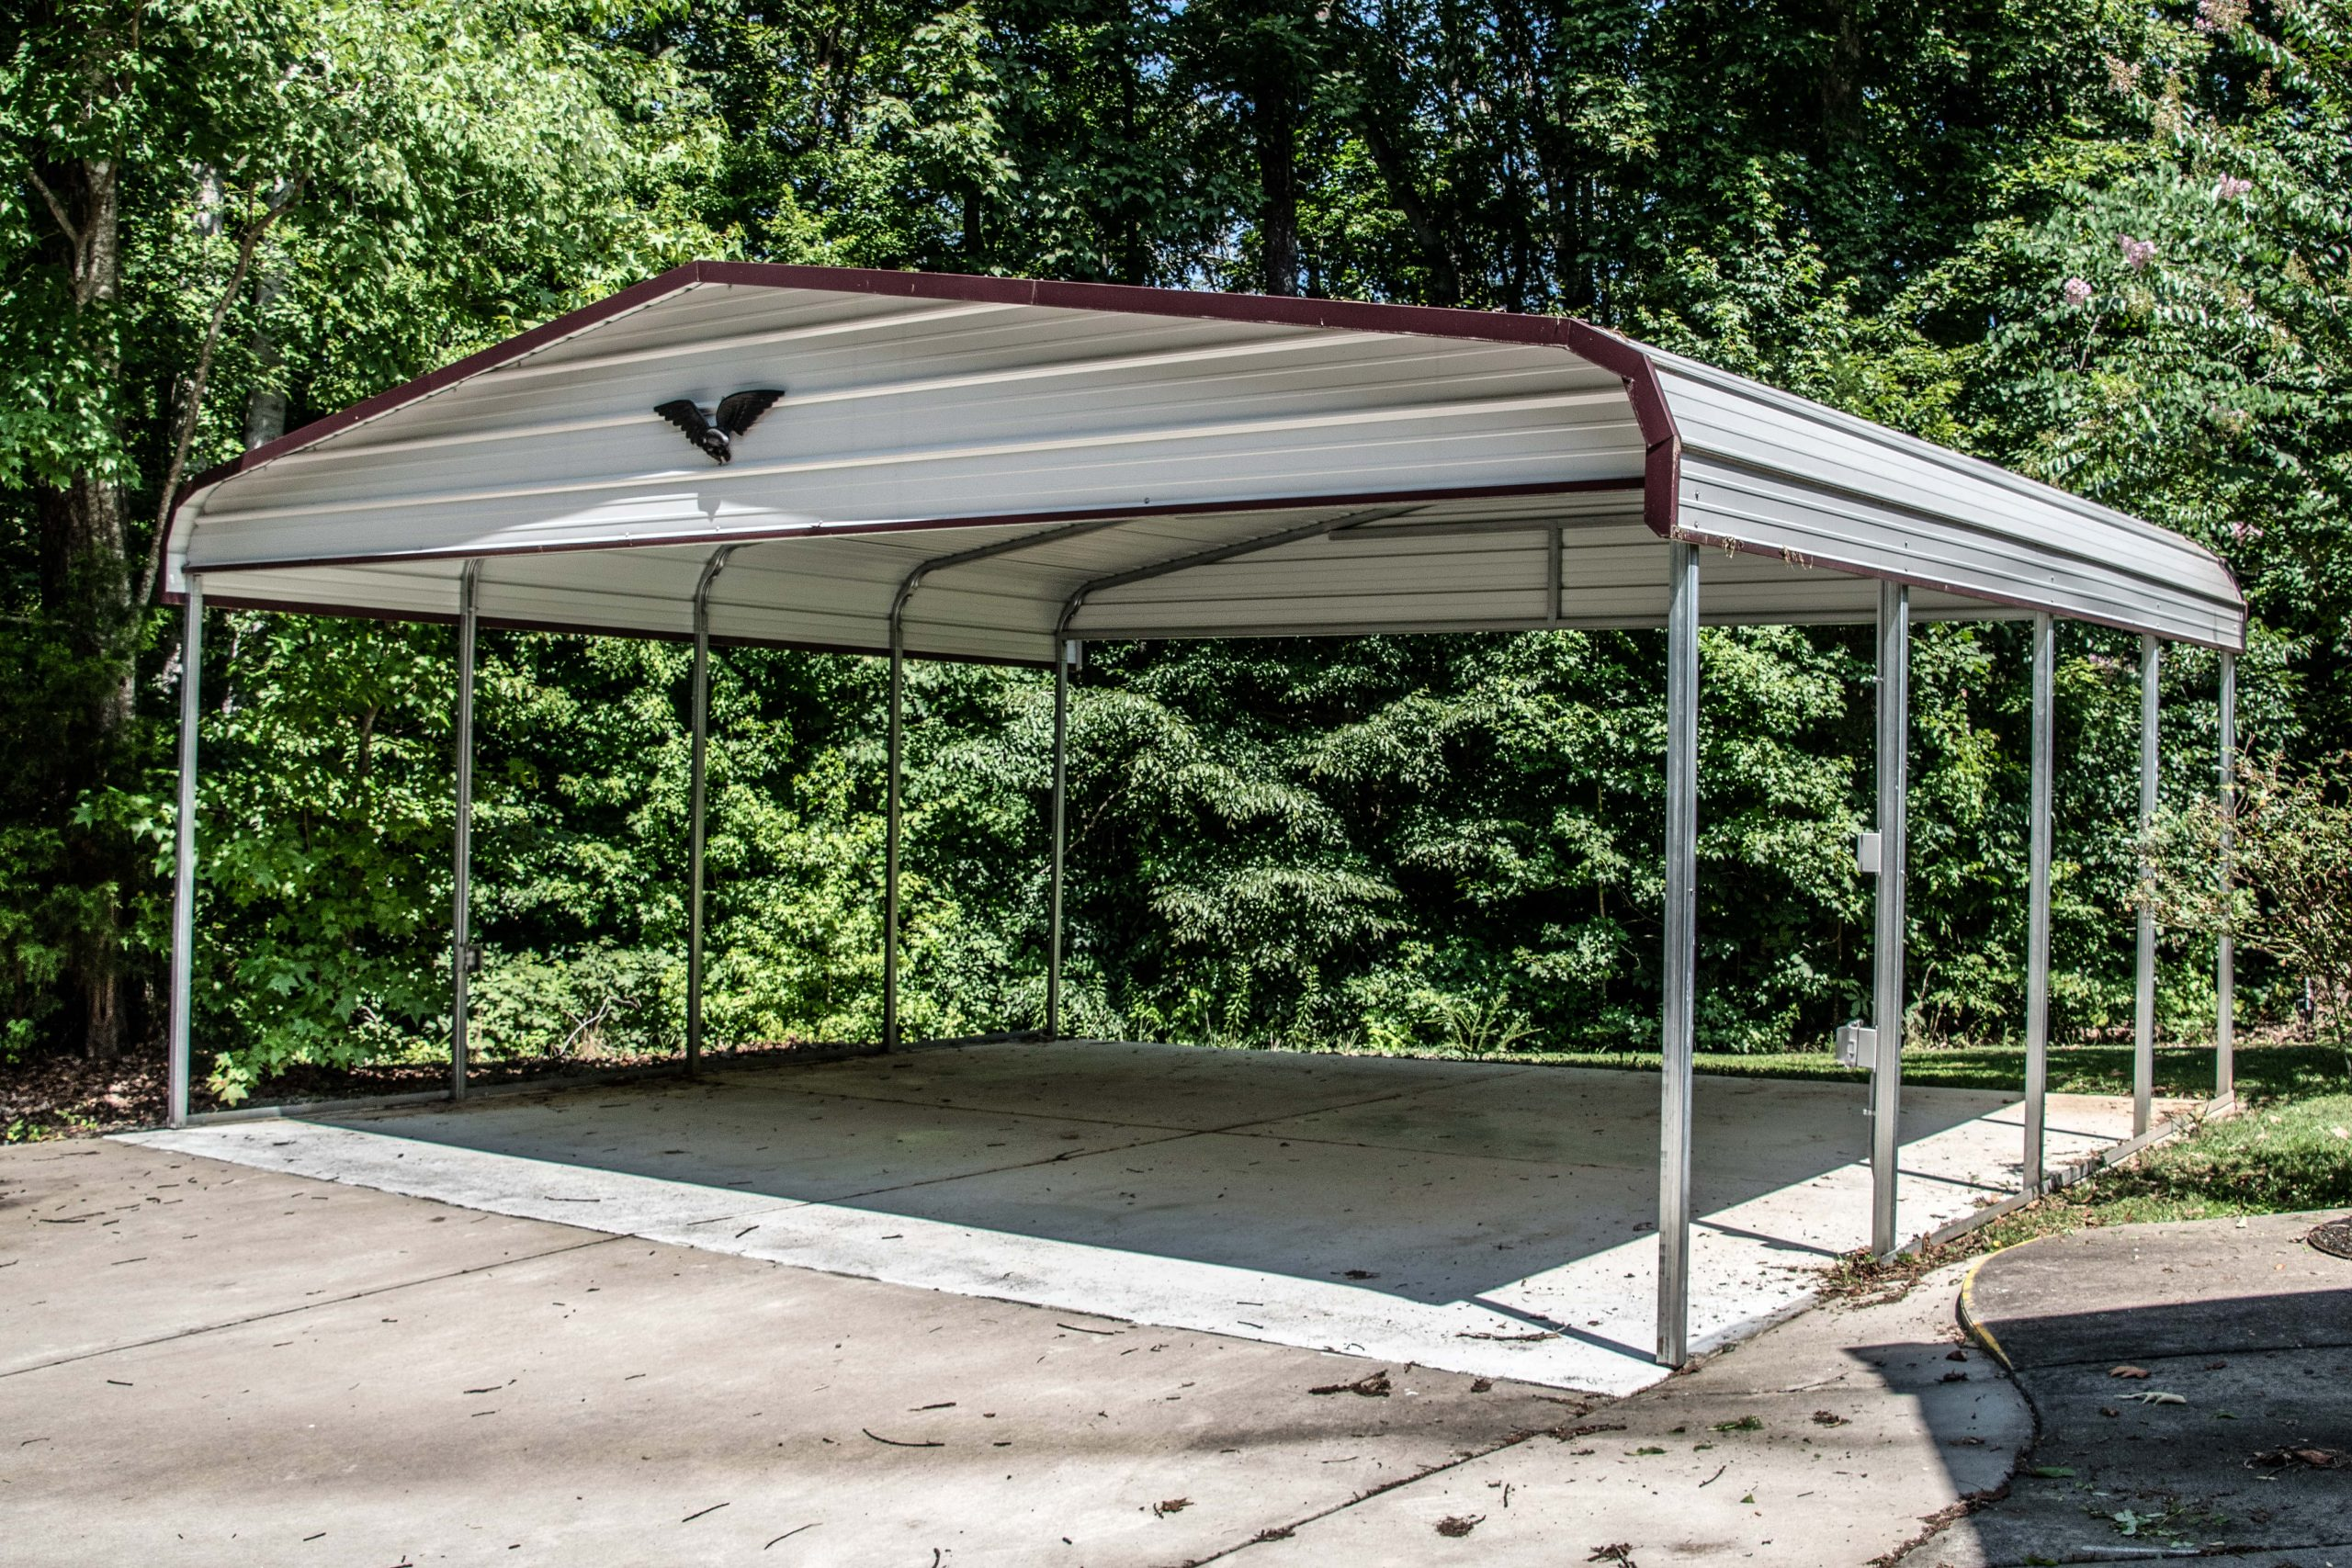 Boxed Eve 3-Sided Metal Carport with Gable End 22 x 26 x 8